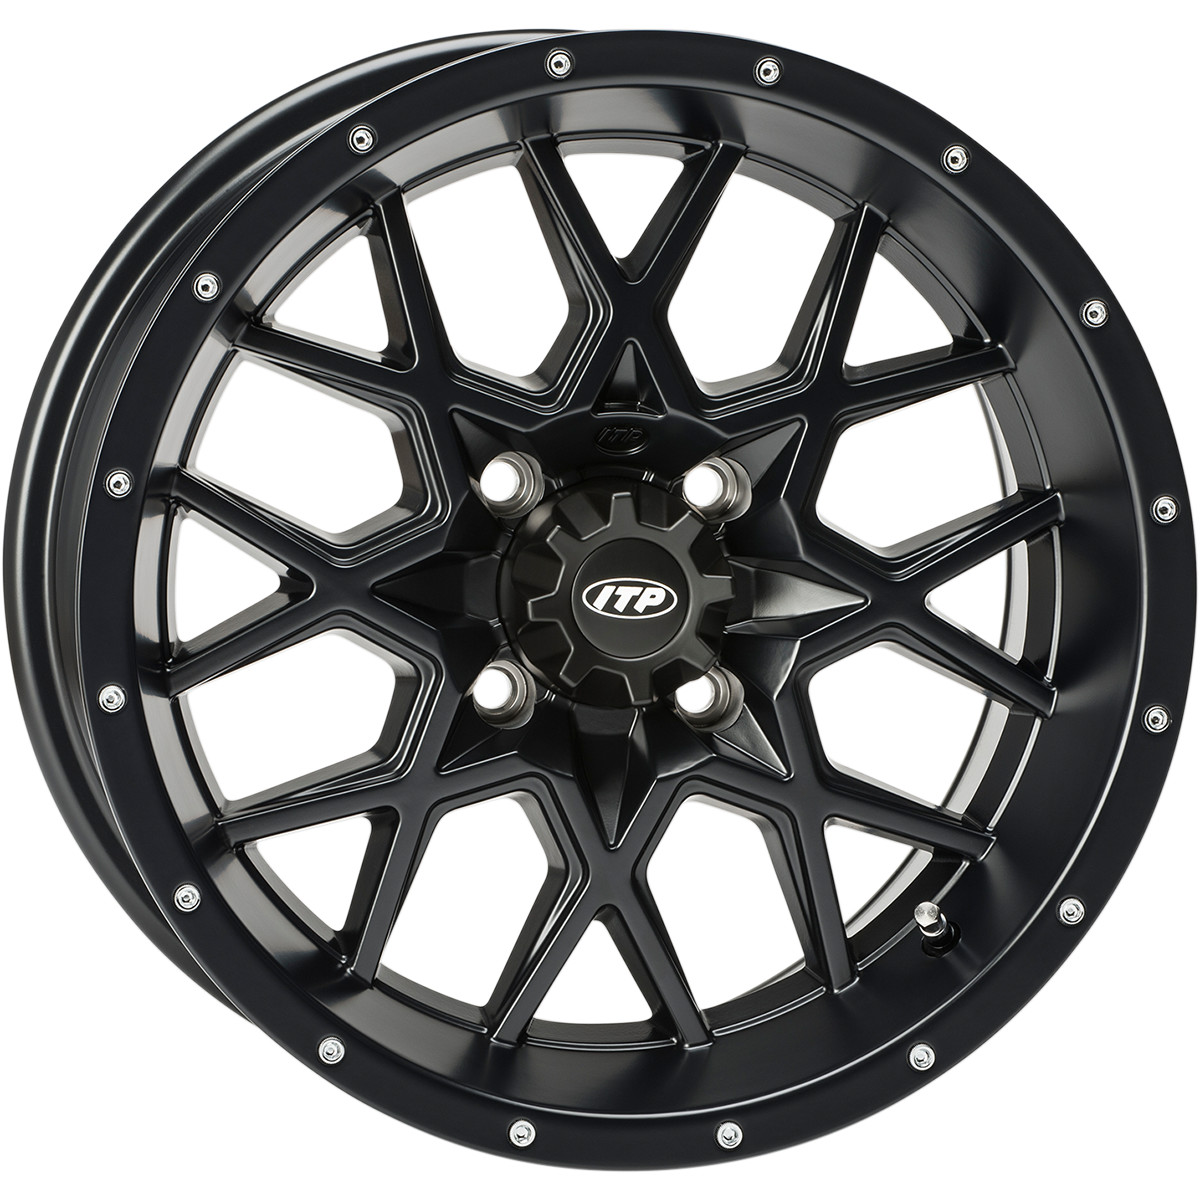 ITP 14x7 4x137 Hurricane Black vannesarja Can-Am